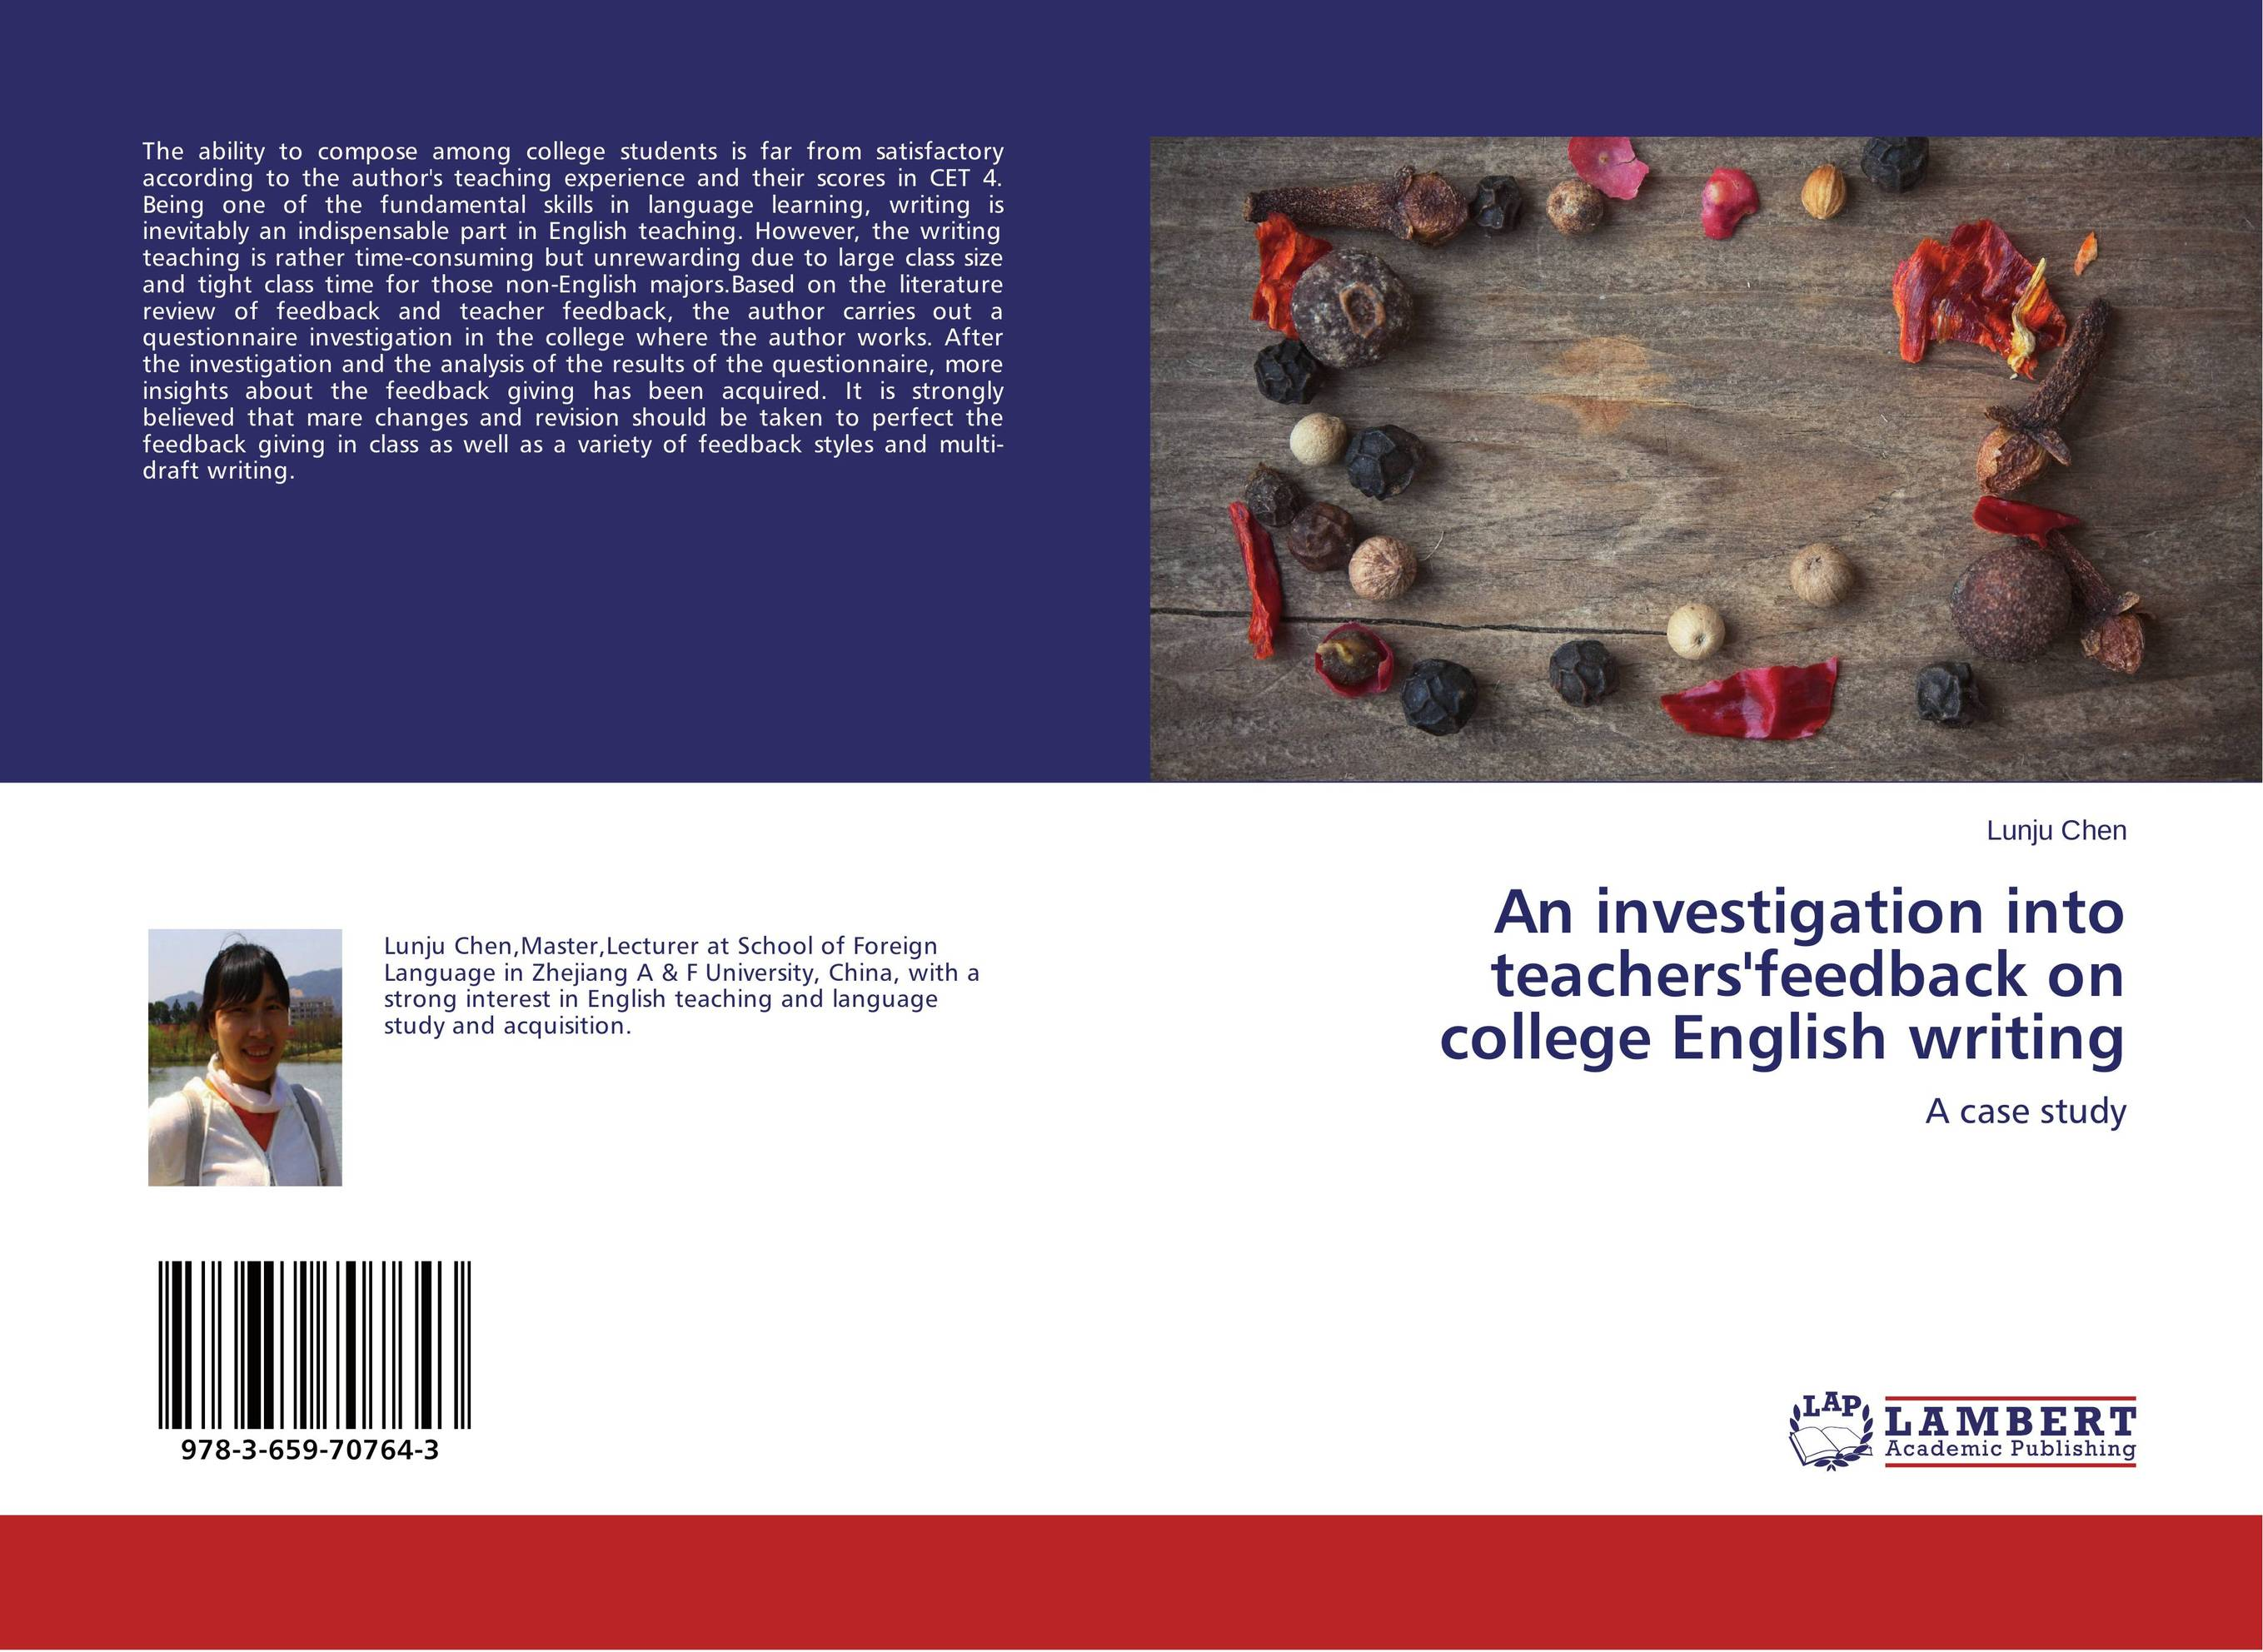 An investigation into teachers'feedback on college English writing